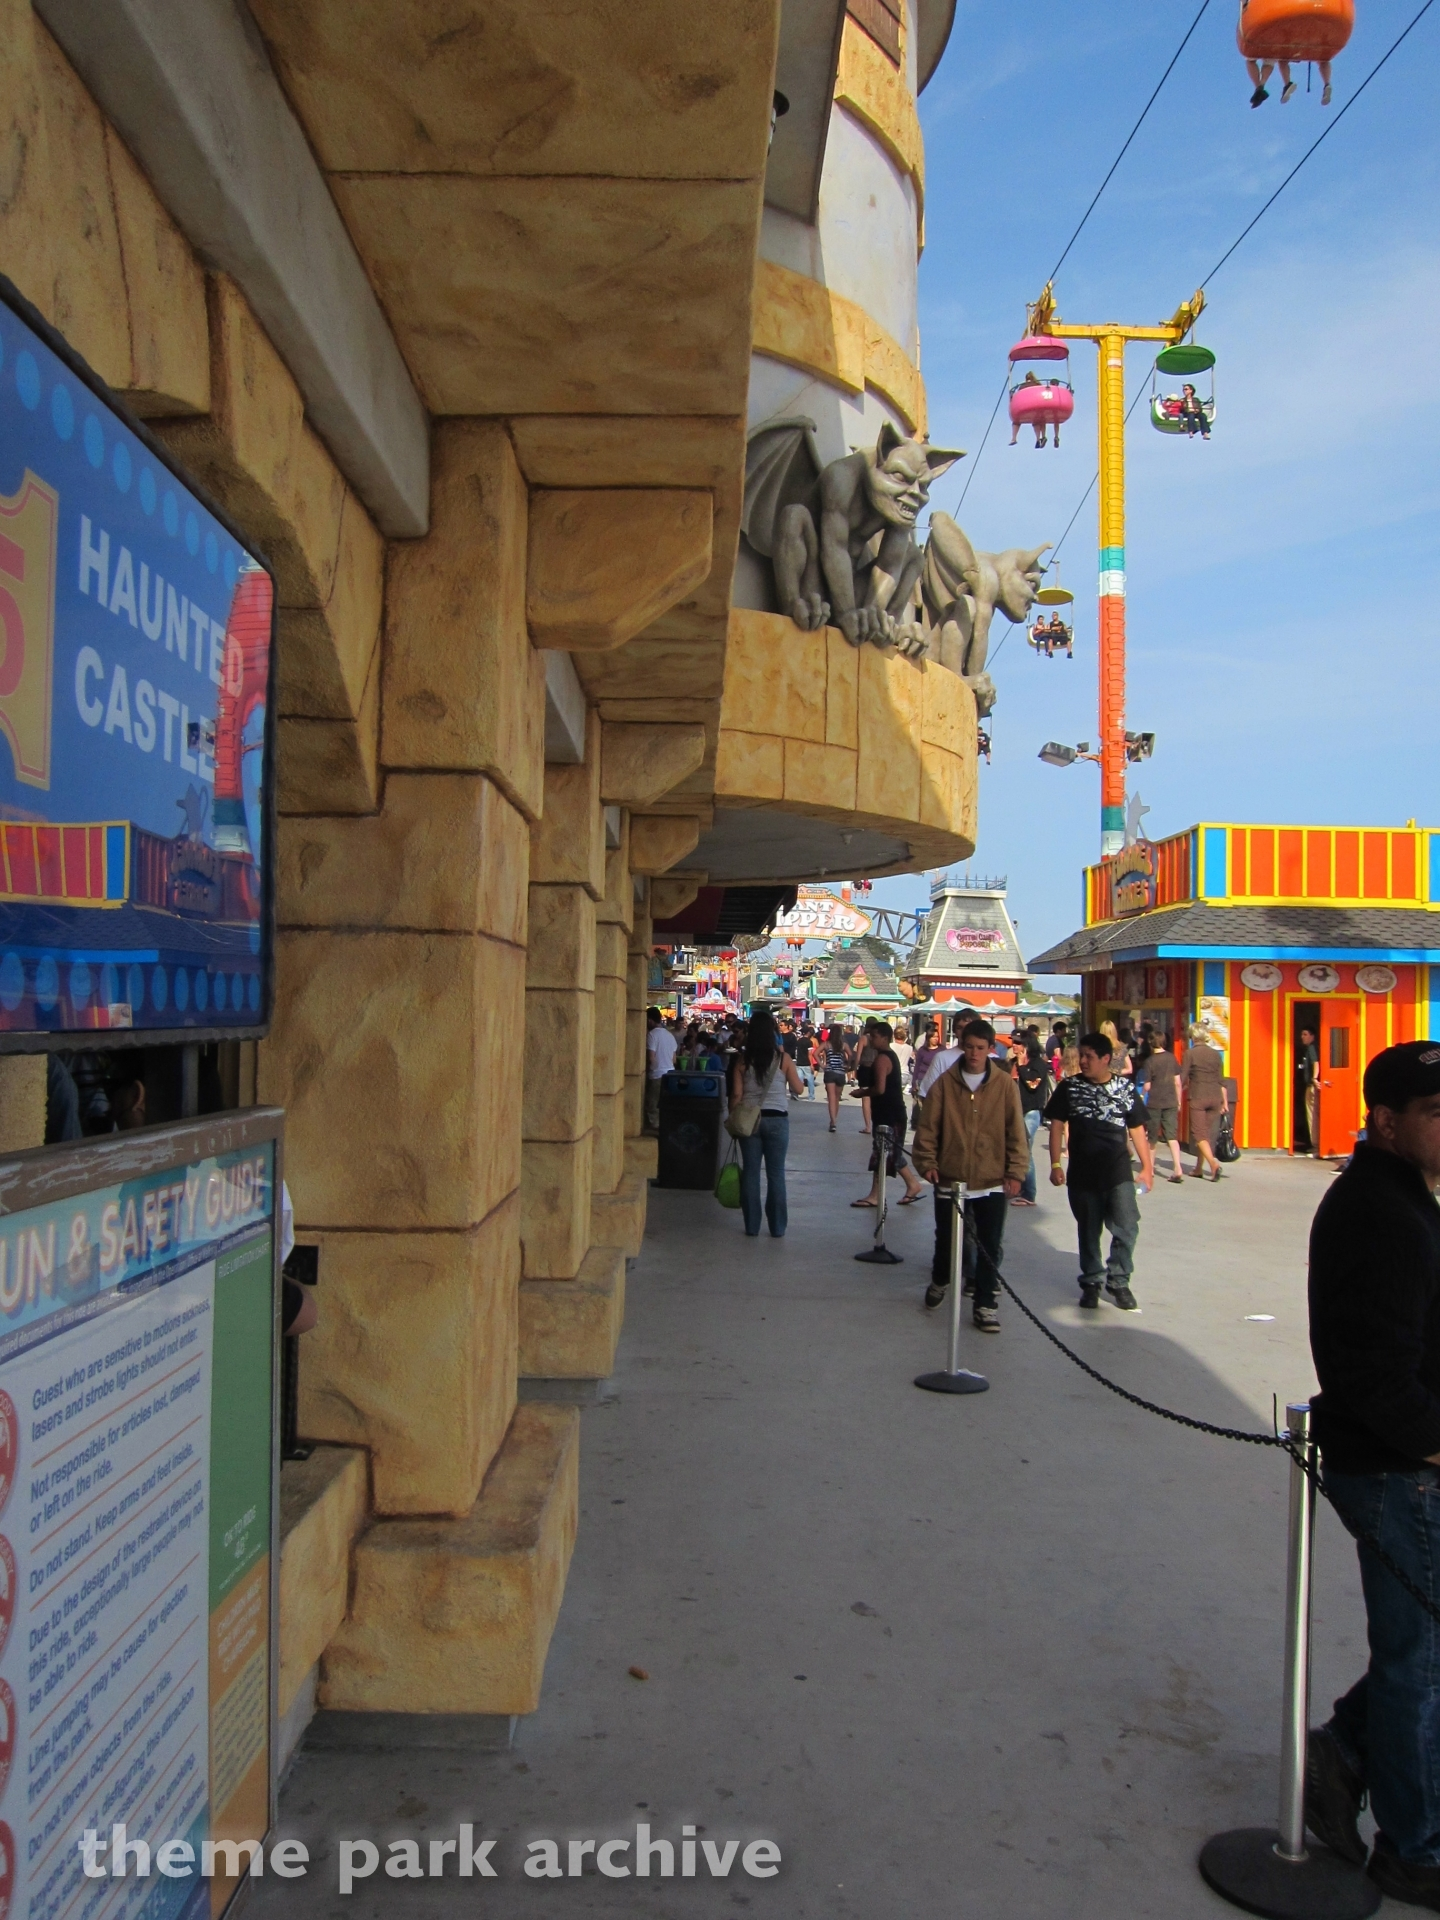 Haunted Castle at Santa Cruz Beach Boardwalk